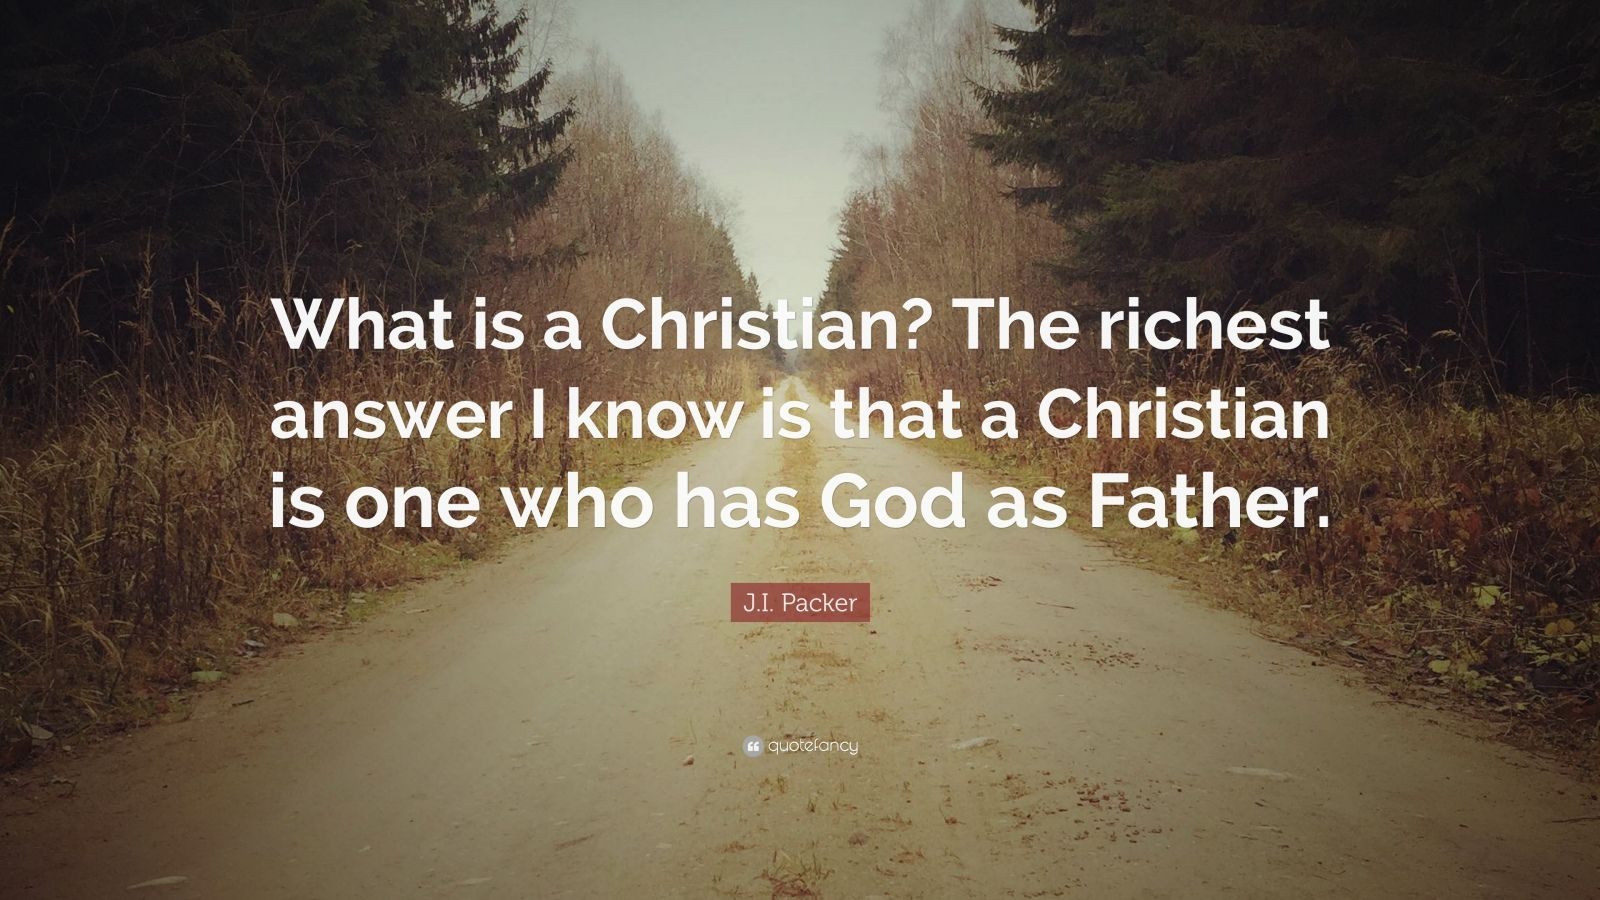 """J.I. Packer Quote: """"What is a Christian? The richest answer I know is that a Christian is one who has God as Father."""""""